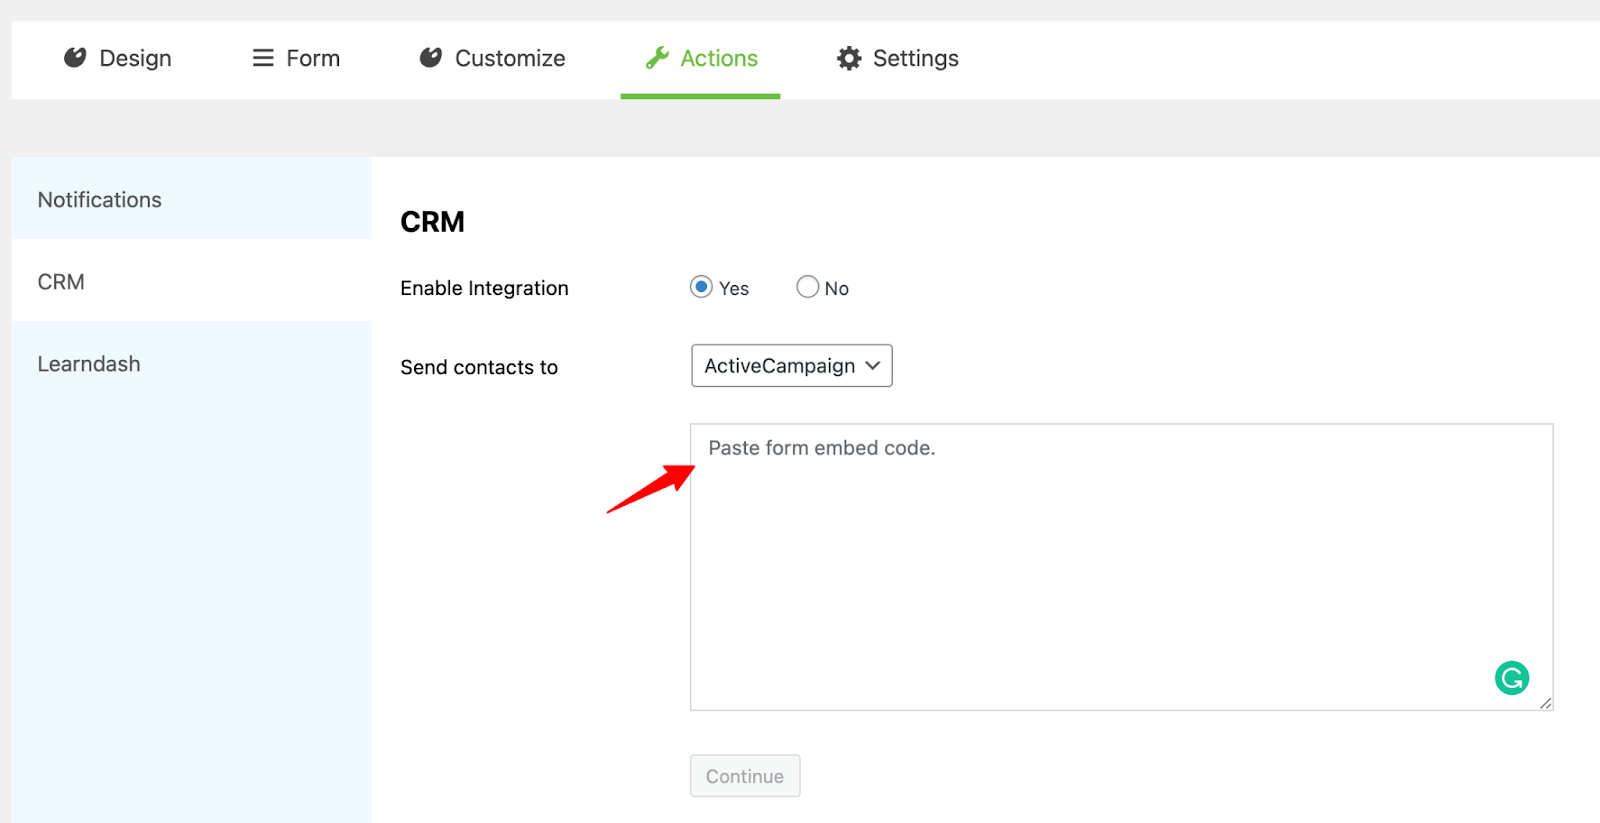 Paste the embed code - lead generation